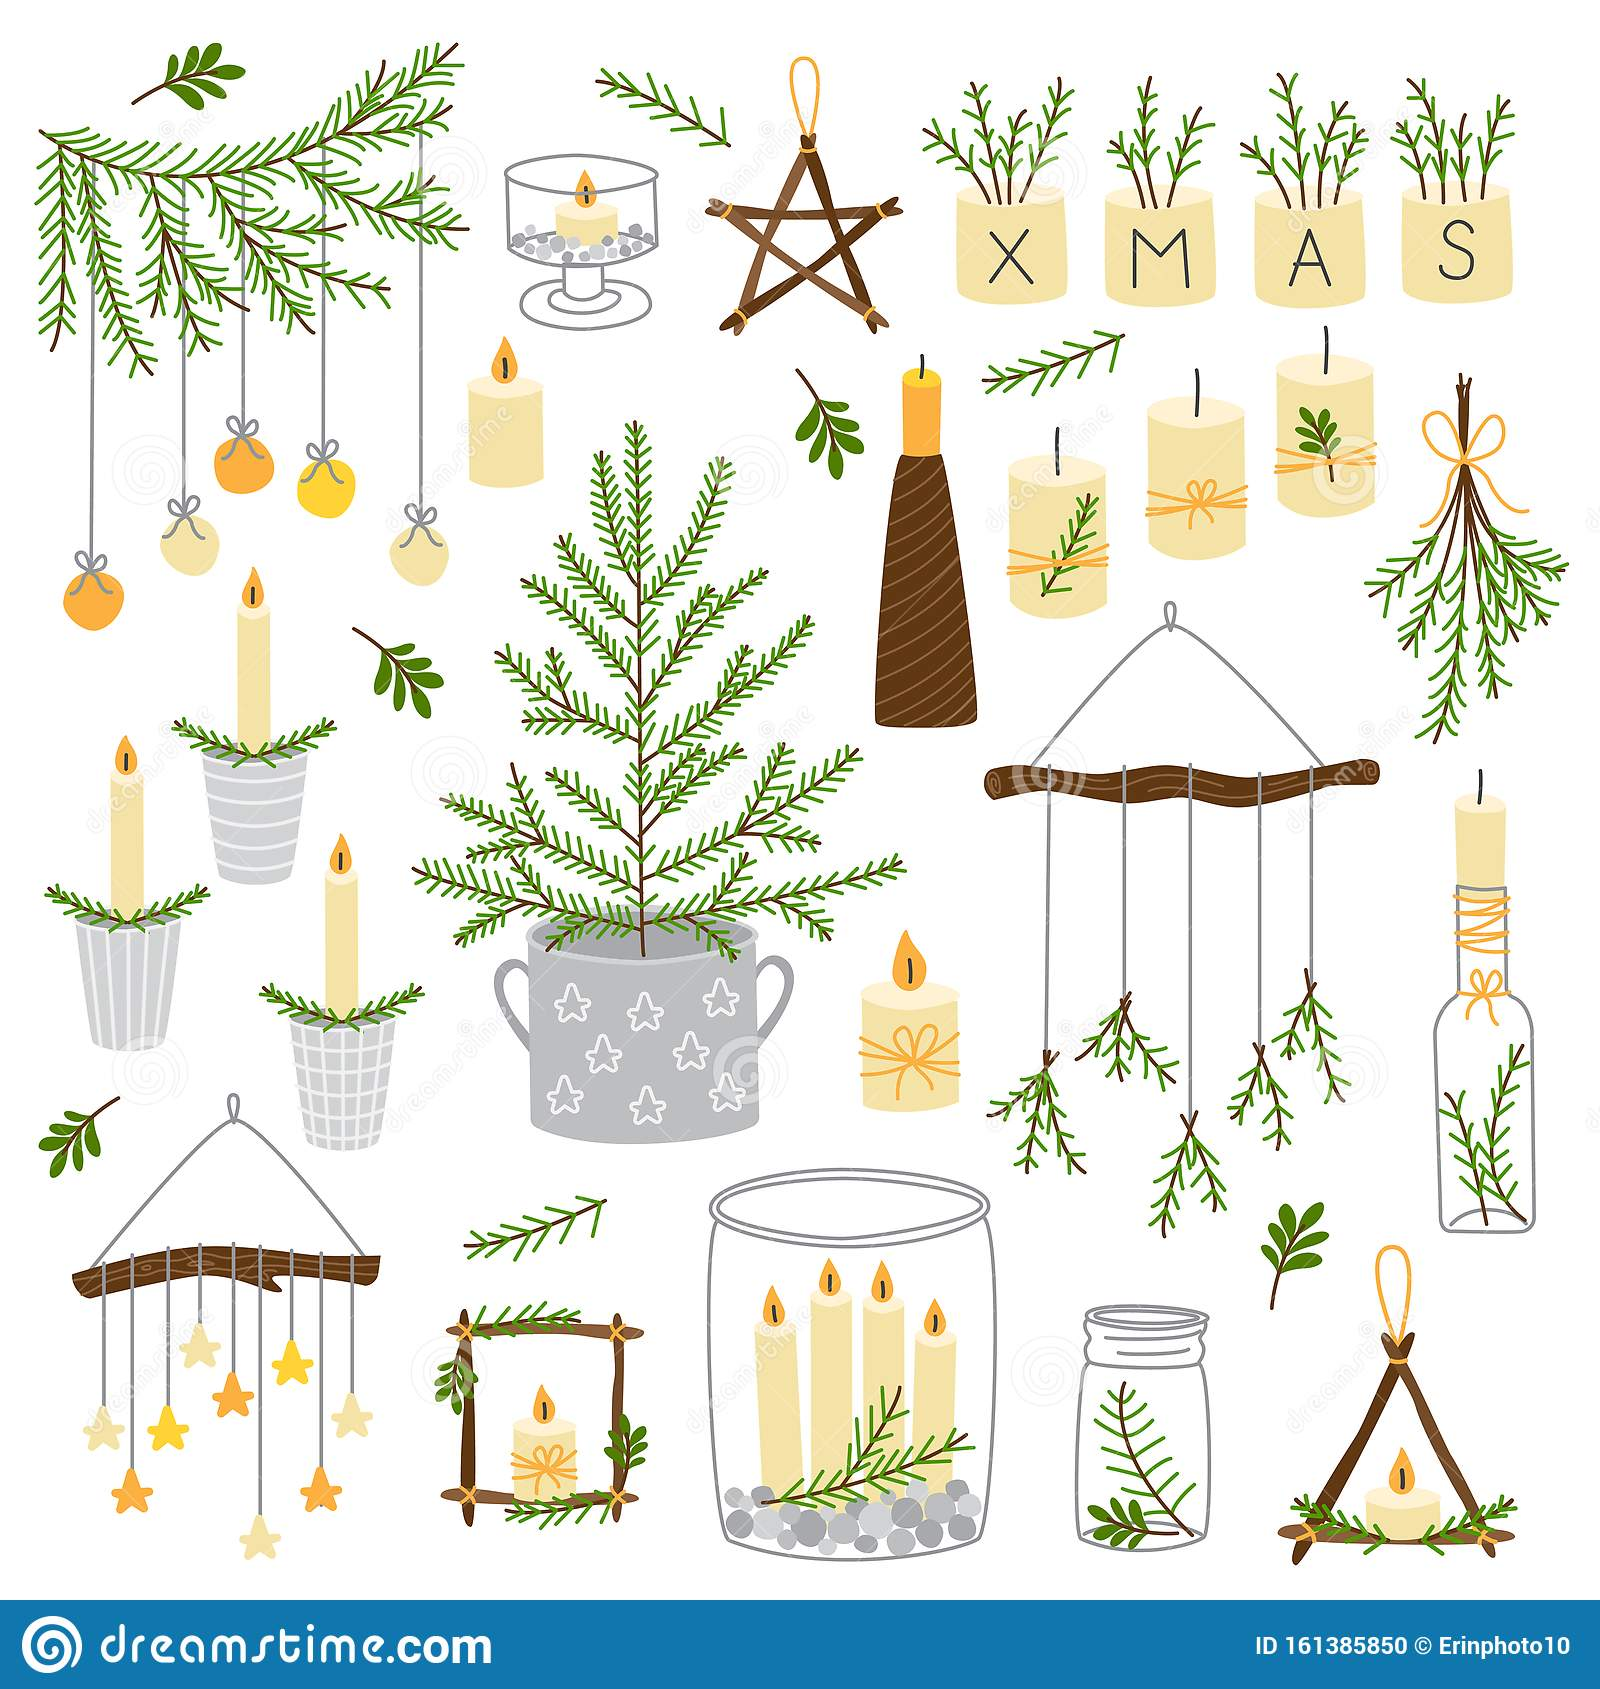 Cute Scandinavian Set Of Vintage Christmas Decorative Elements As Wooden Star Christmas Tree Candles Mason Jars Stock Vector Illustration Of Background Decorative 161385850